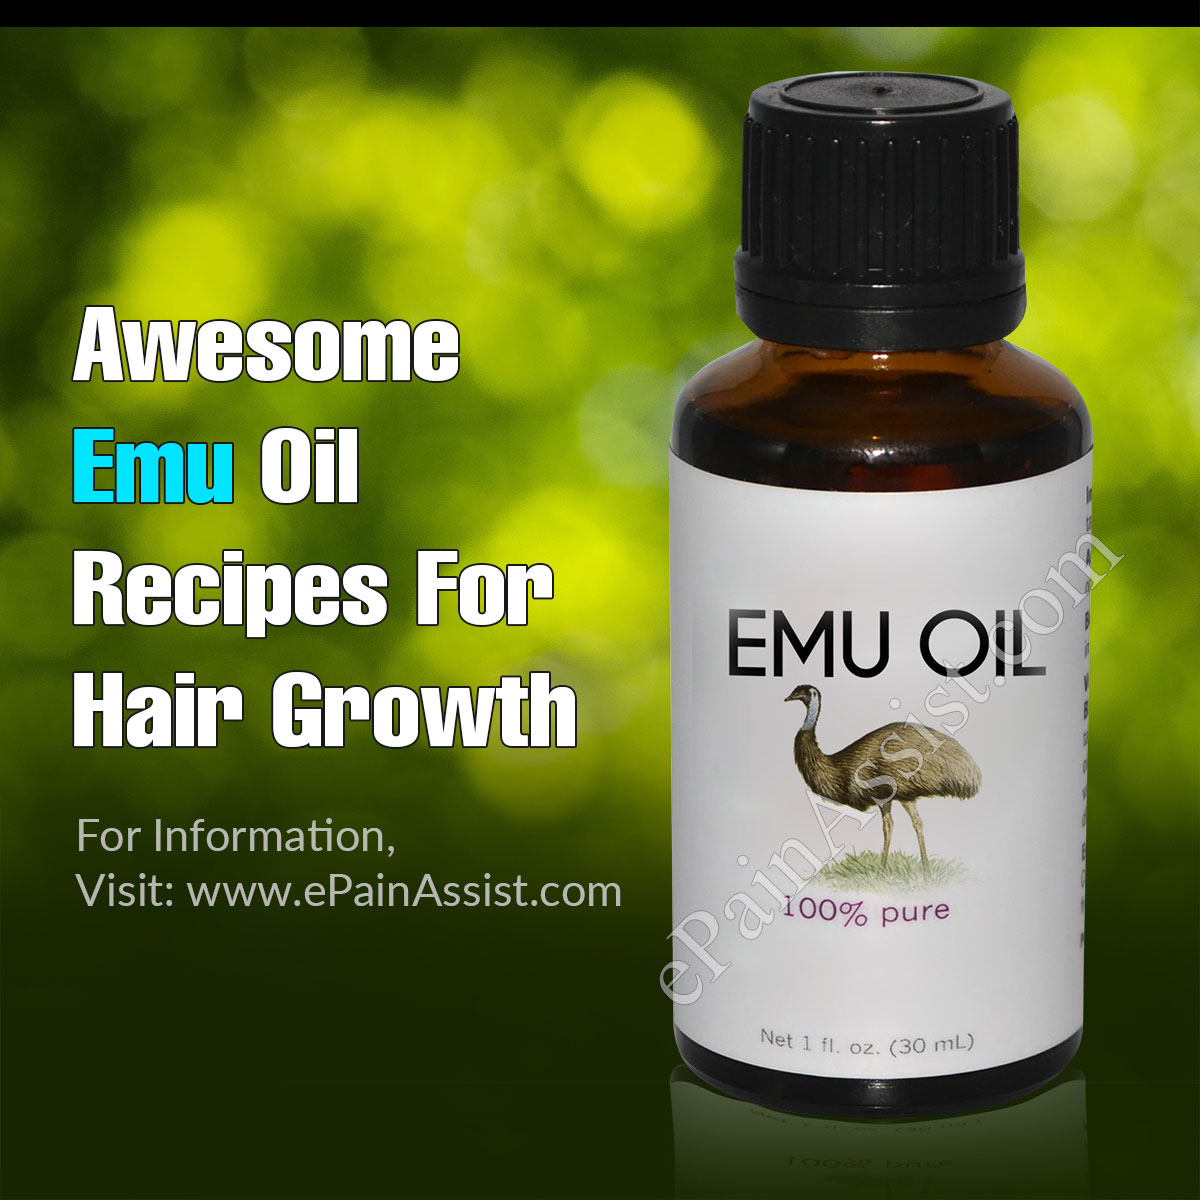 3 Awesome Emu Oil Recipes For Hair Growth